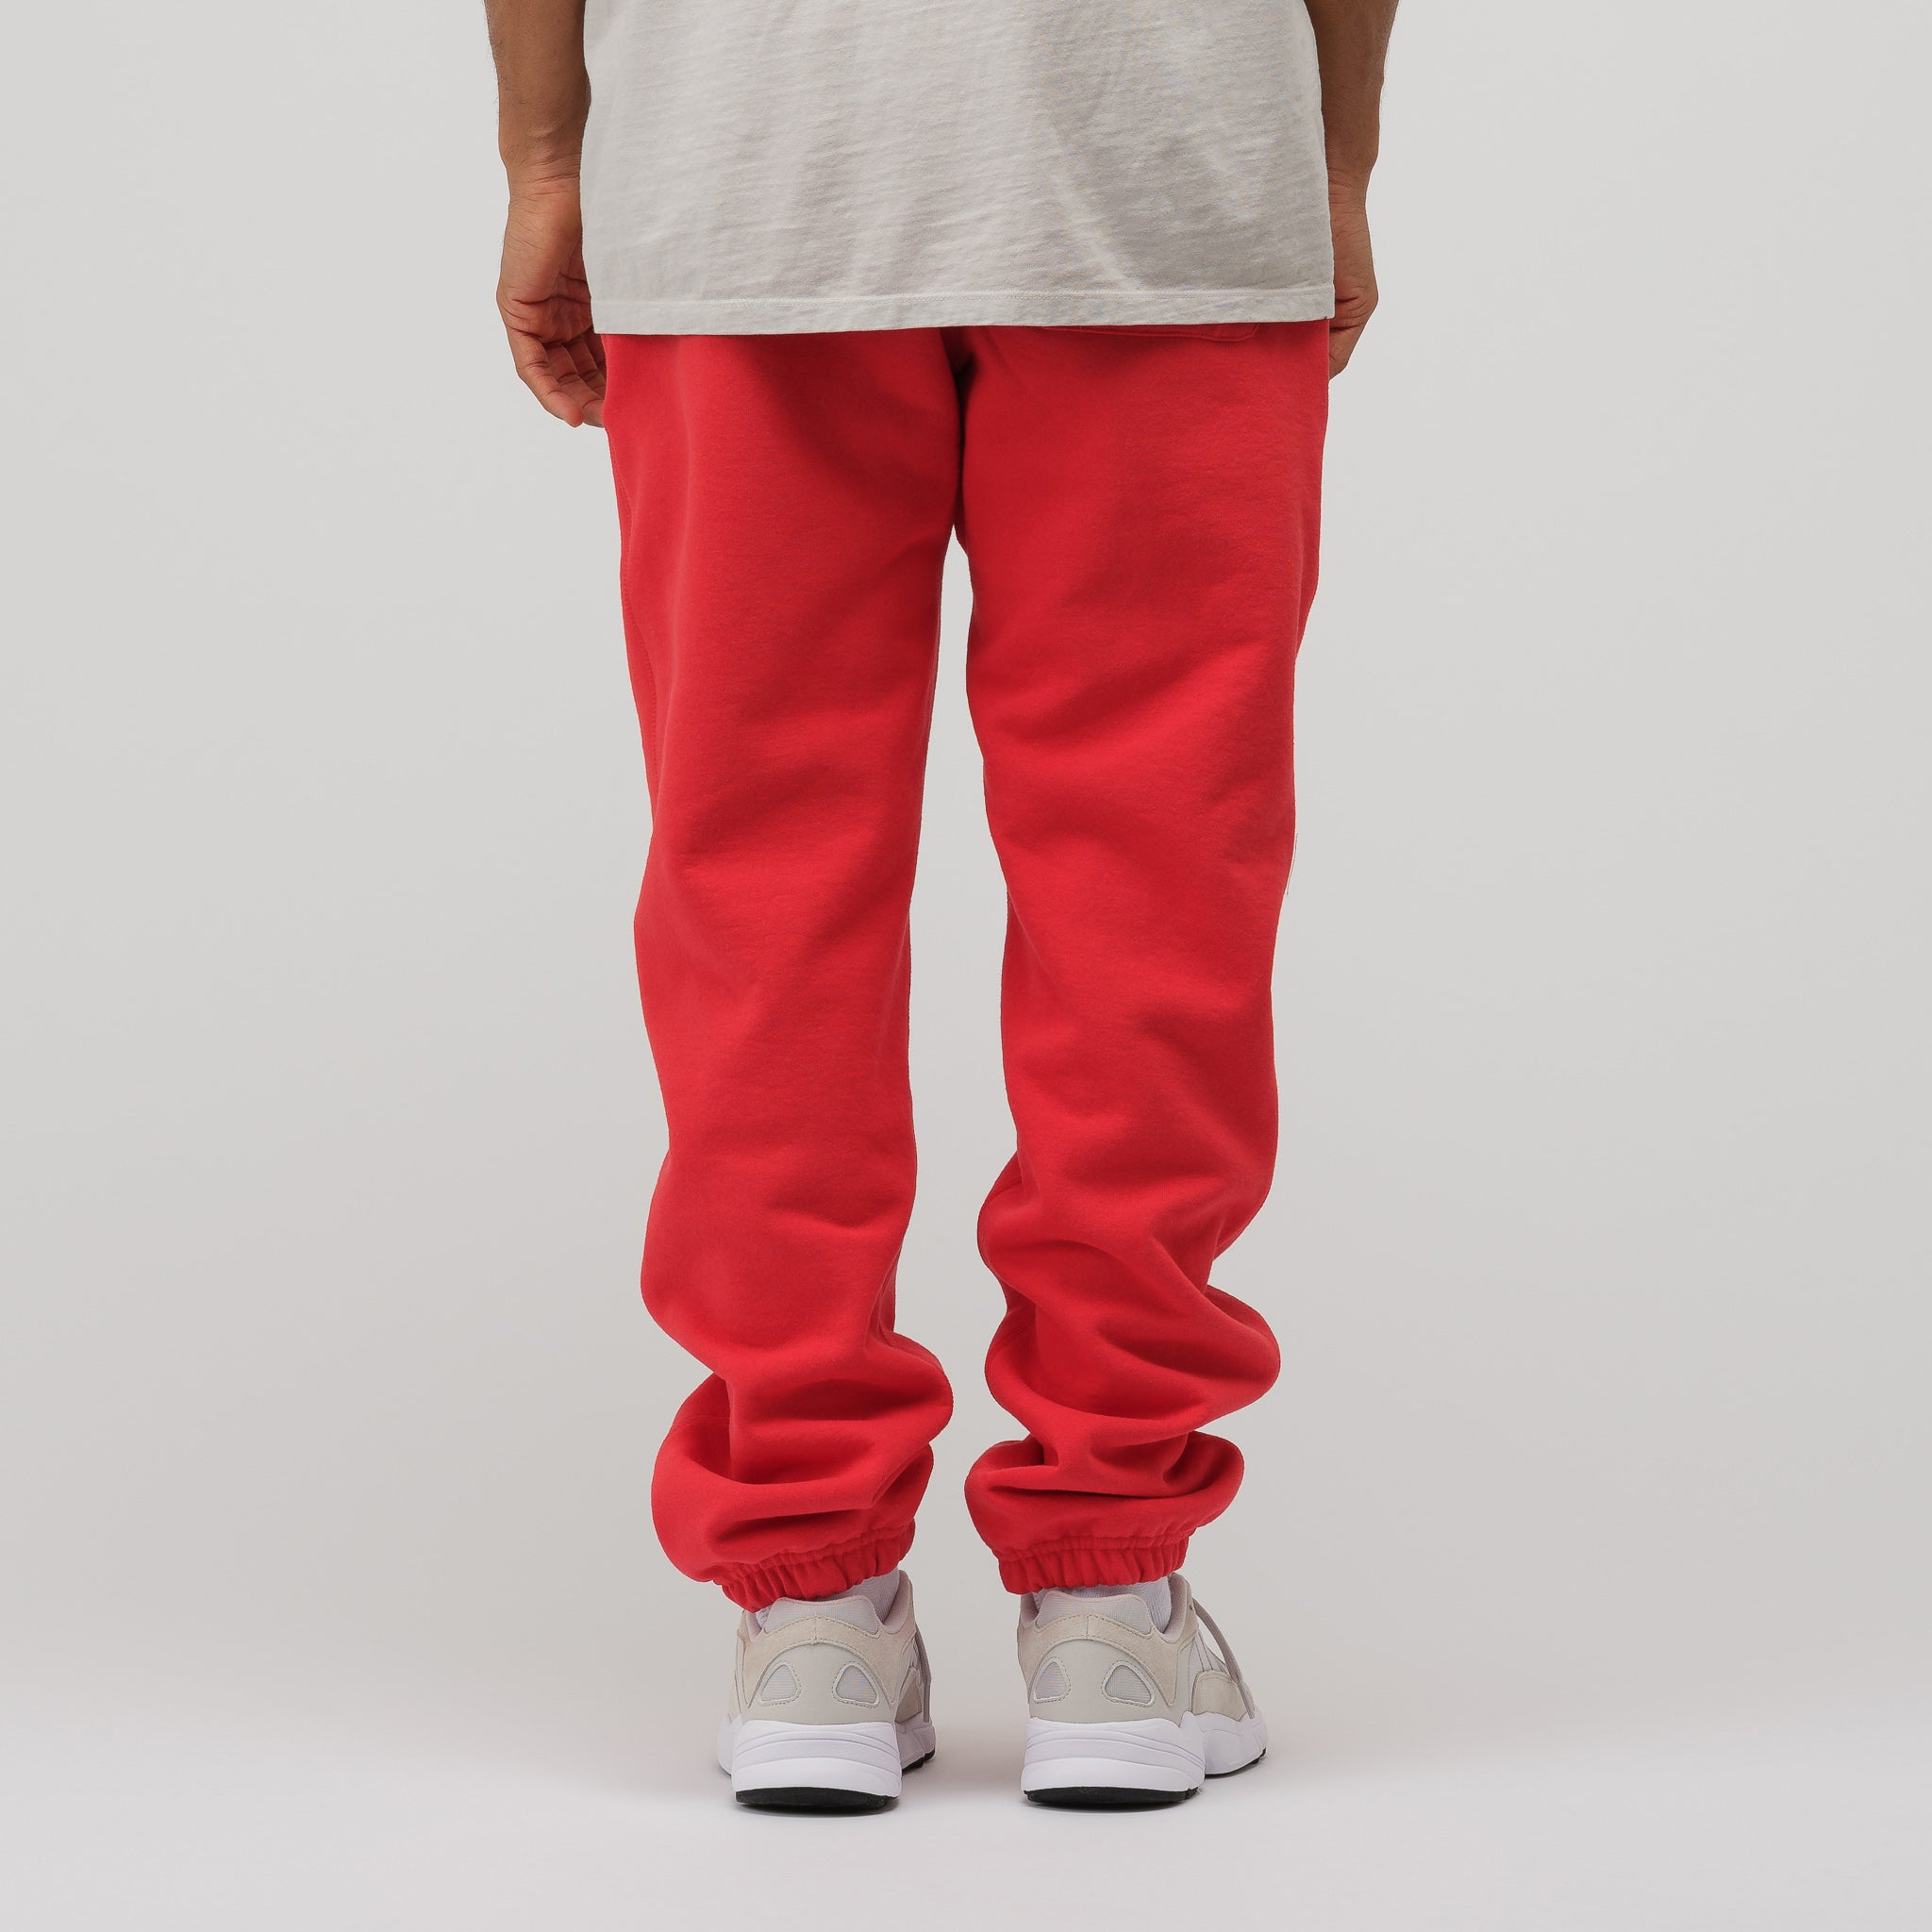 a0b45e91fb52d5 Bianca Chandon Lover Sweatpants in Red/Red   Notre